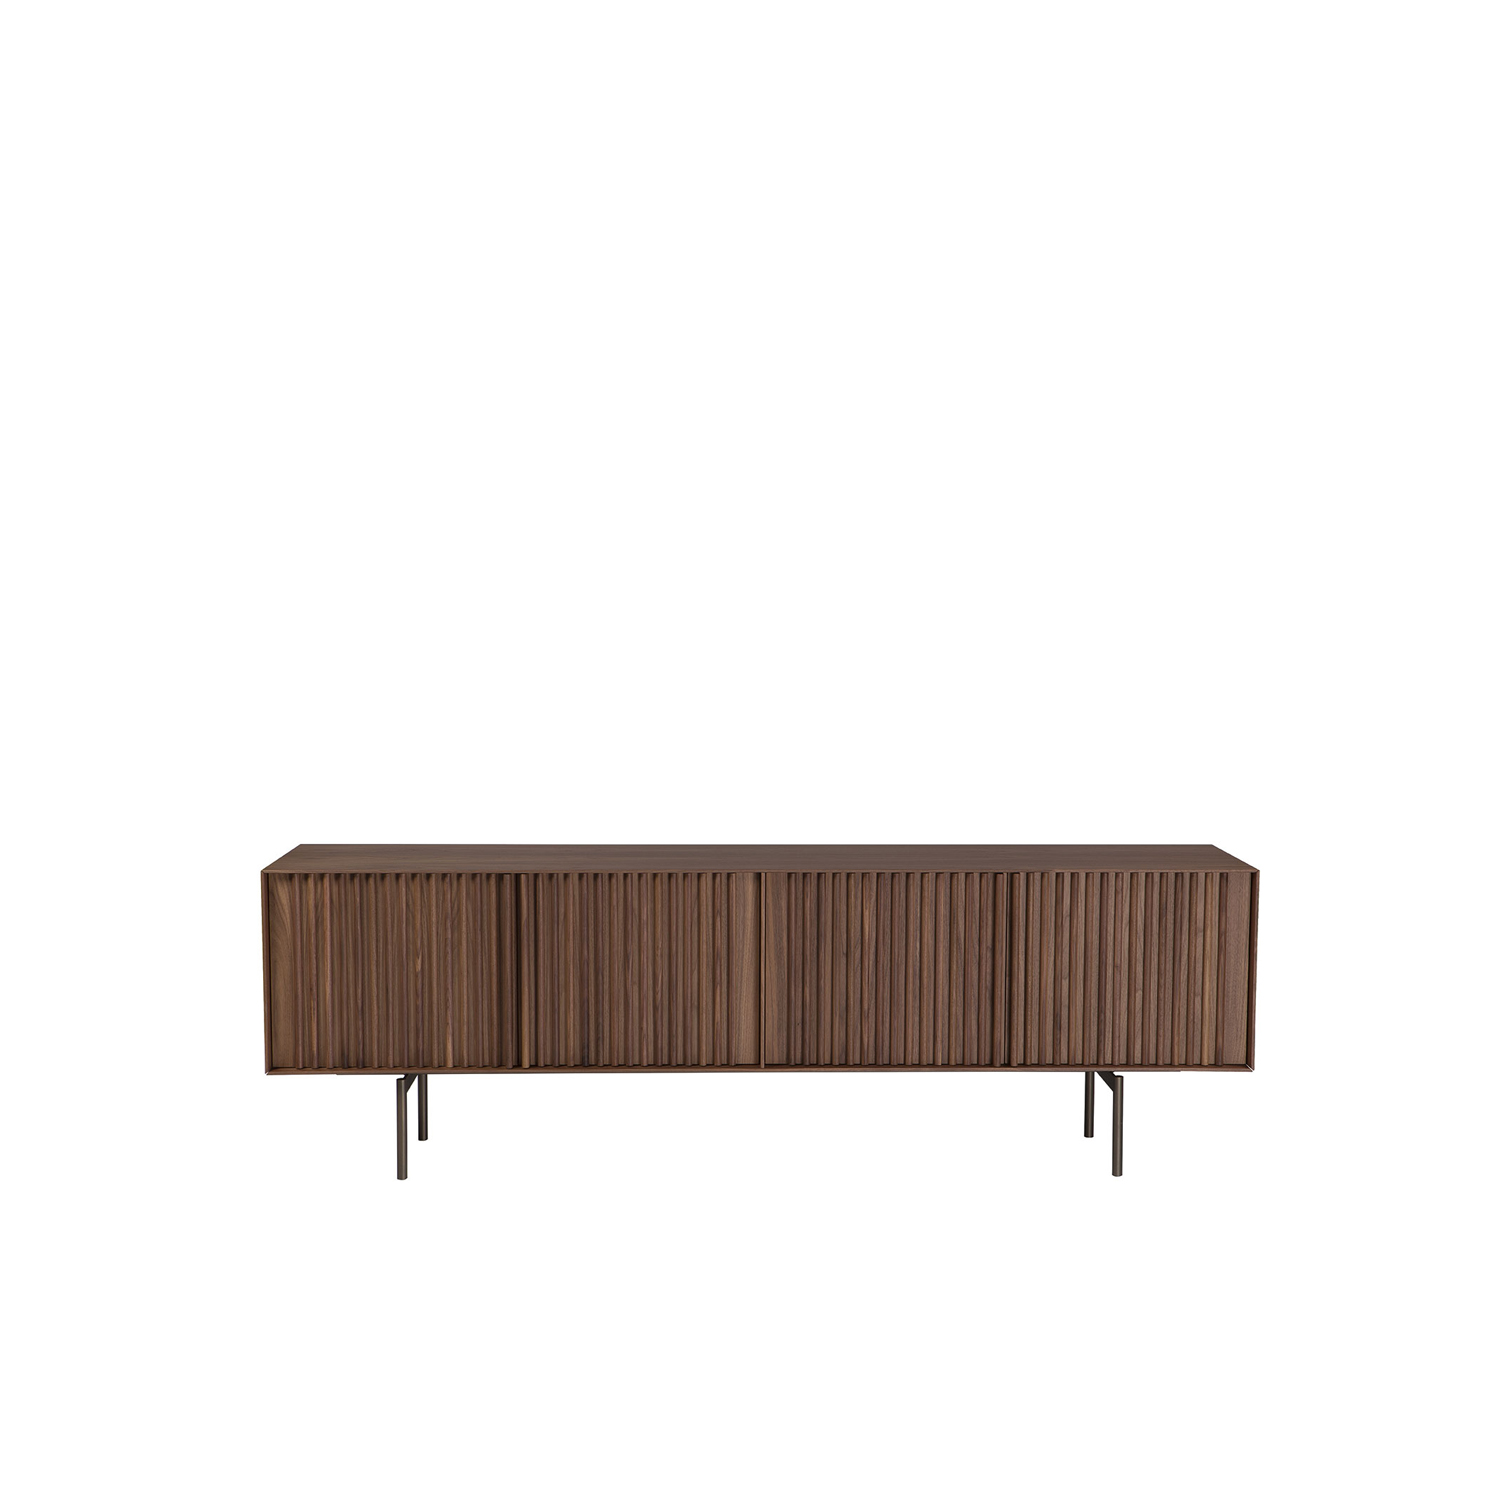 Ka-Bera 003 A Sideboard - Sideboard in various sizes with 4 doors, inside shelf.